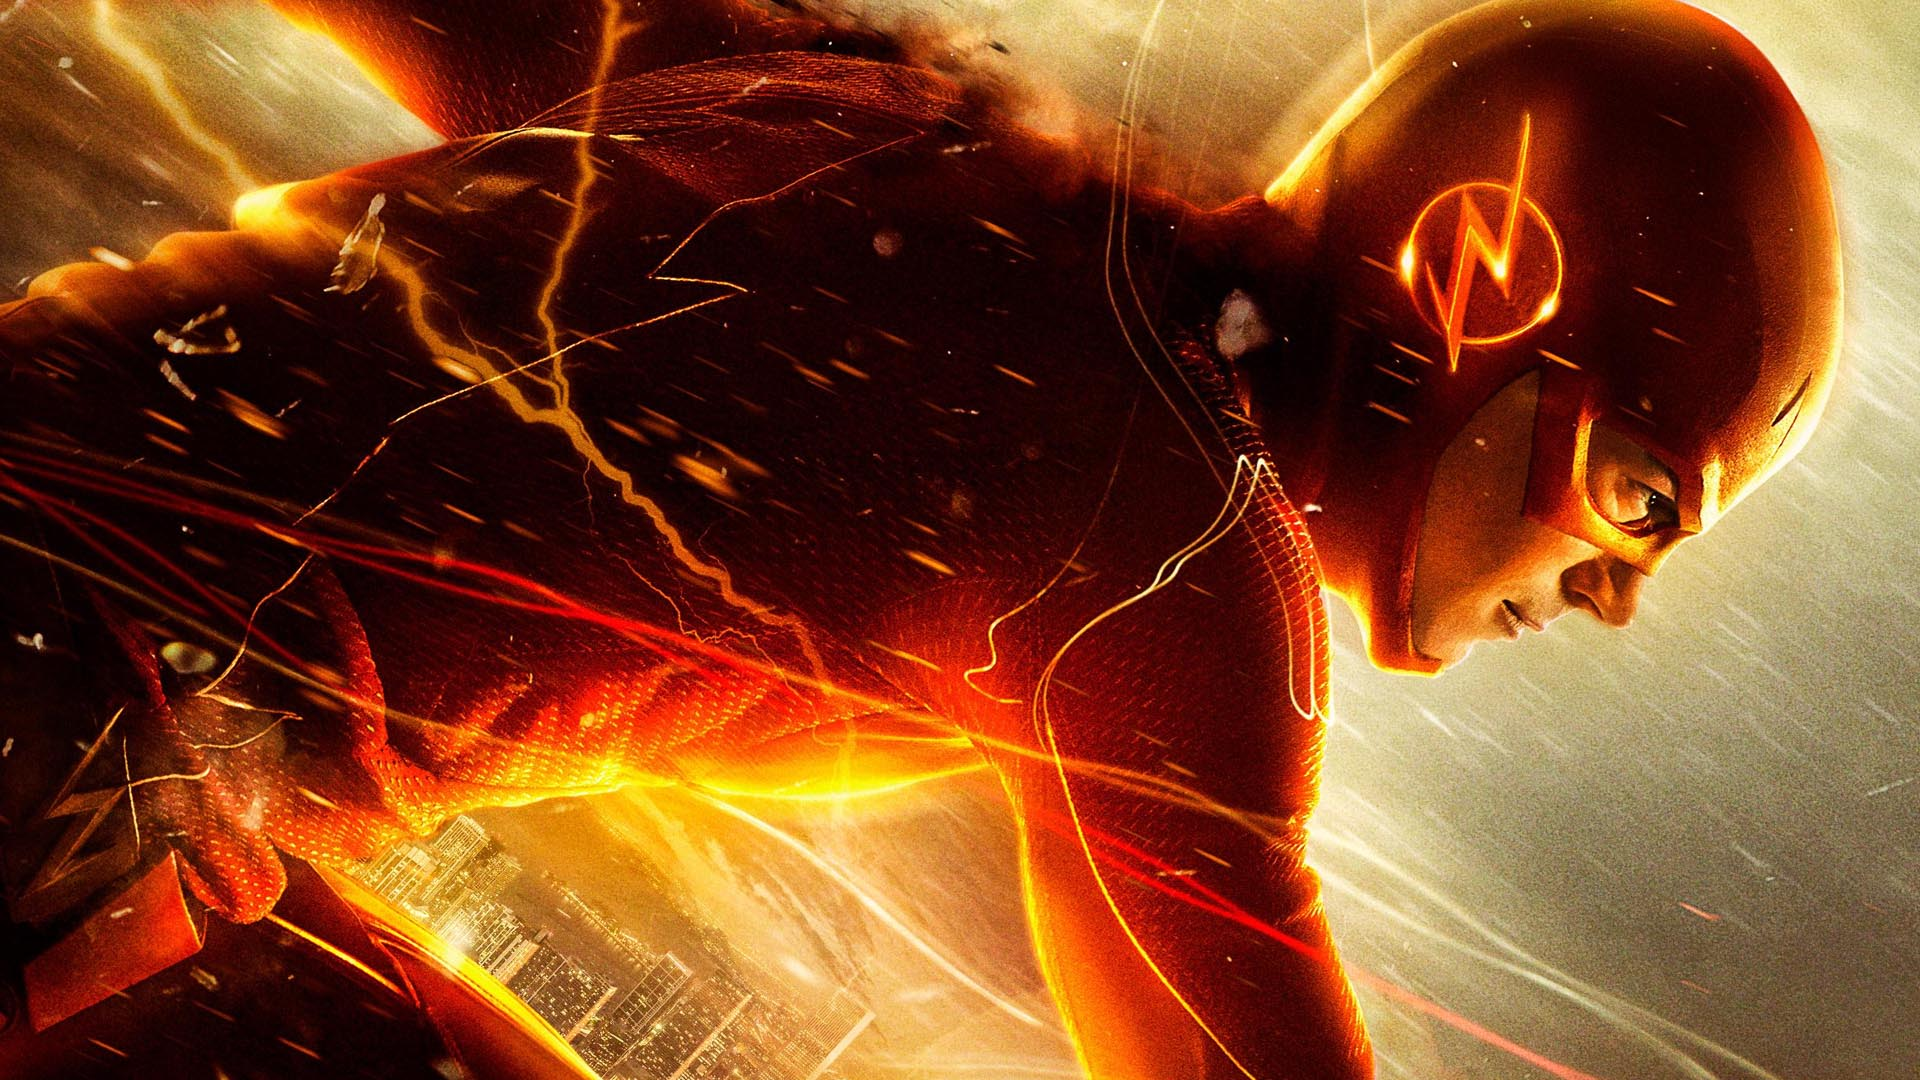 The Flash   Wallpaper   The Flash CW Wallpaper 37862535 1920x1080